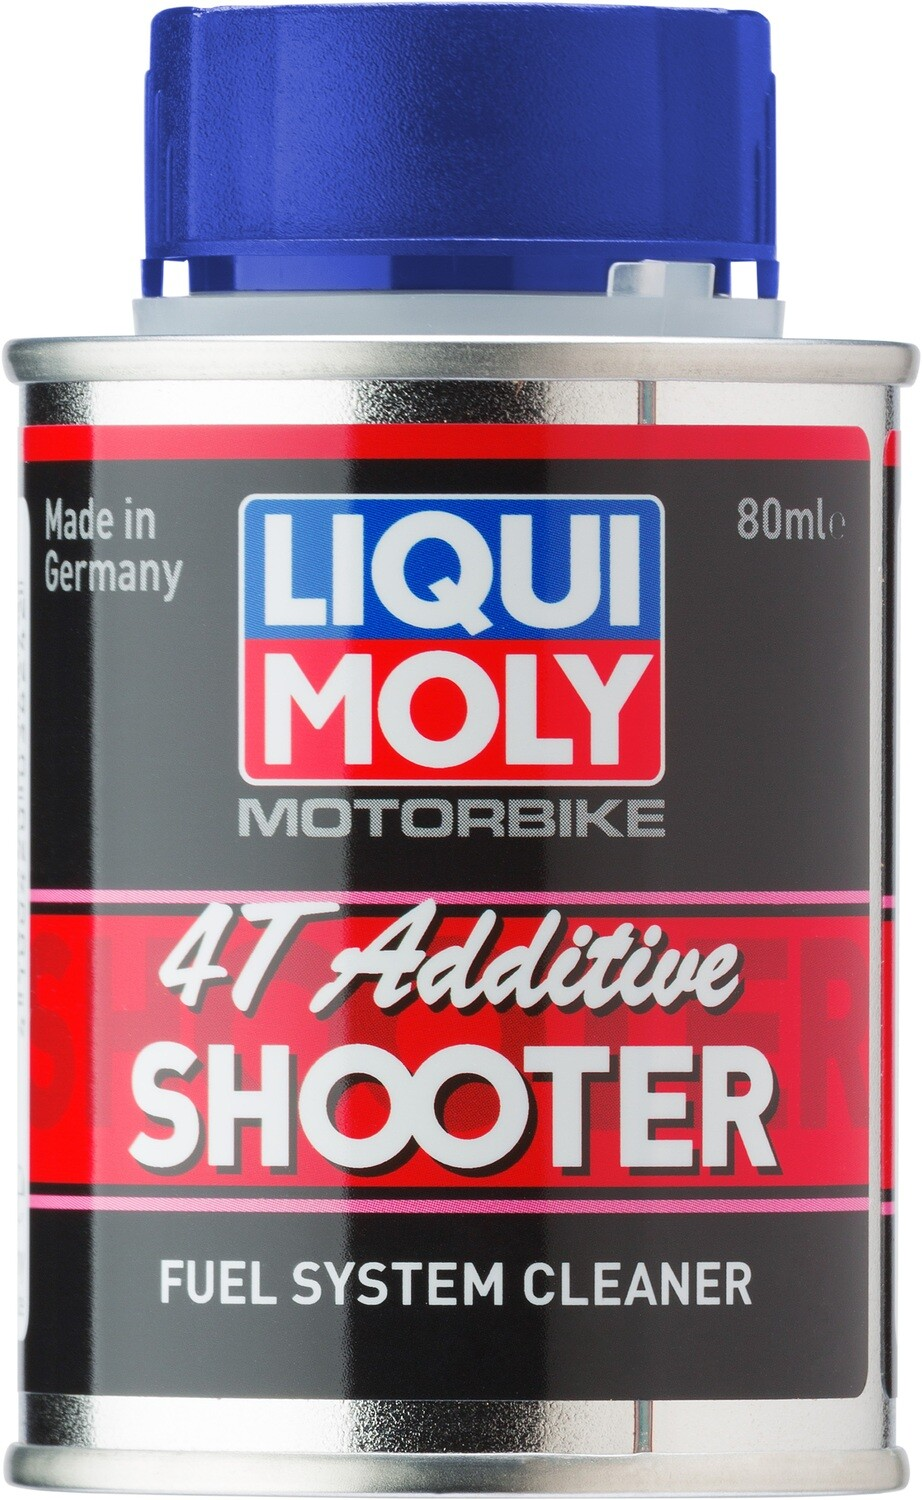 LIQUI MOLY - ADDITIVO MOTORBIKE 4T SHOOTER